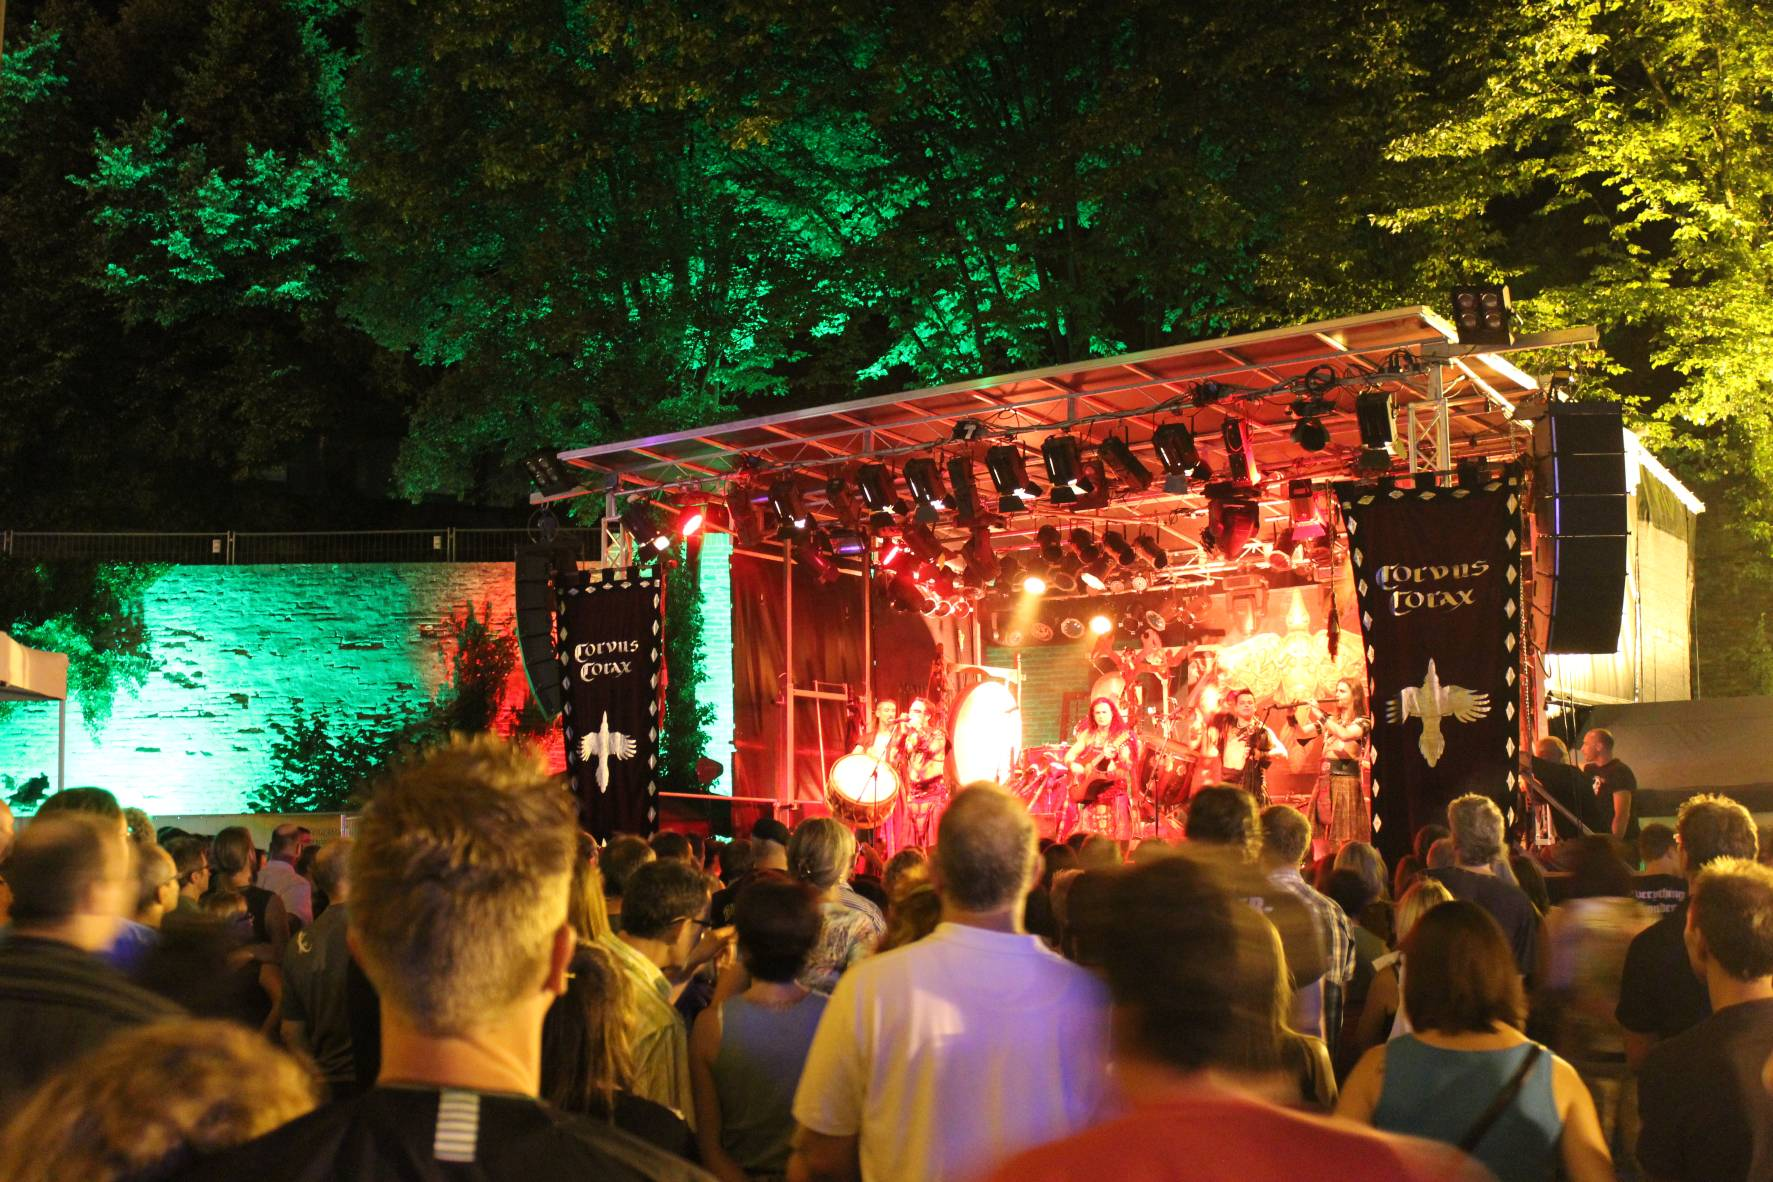 Irish-Folk; Bühne; Showbühne; Festivalbühne; Open-Air; Bühnendach